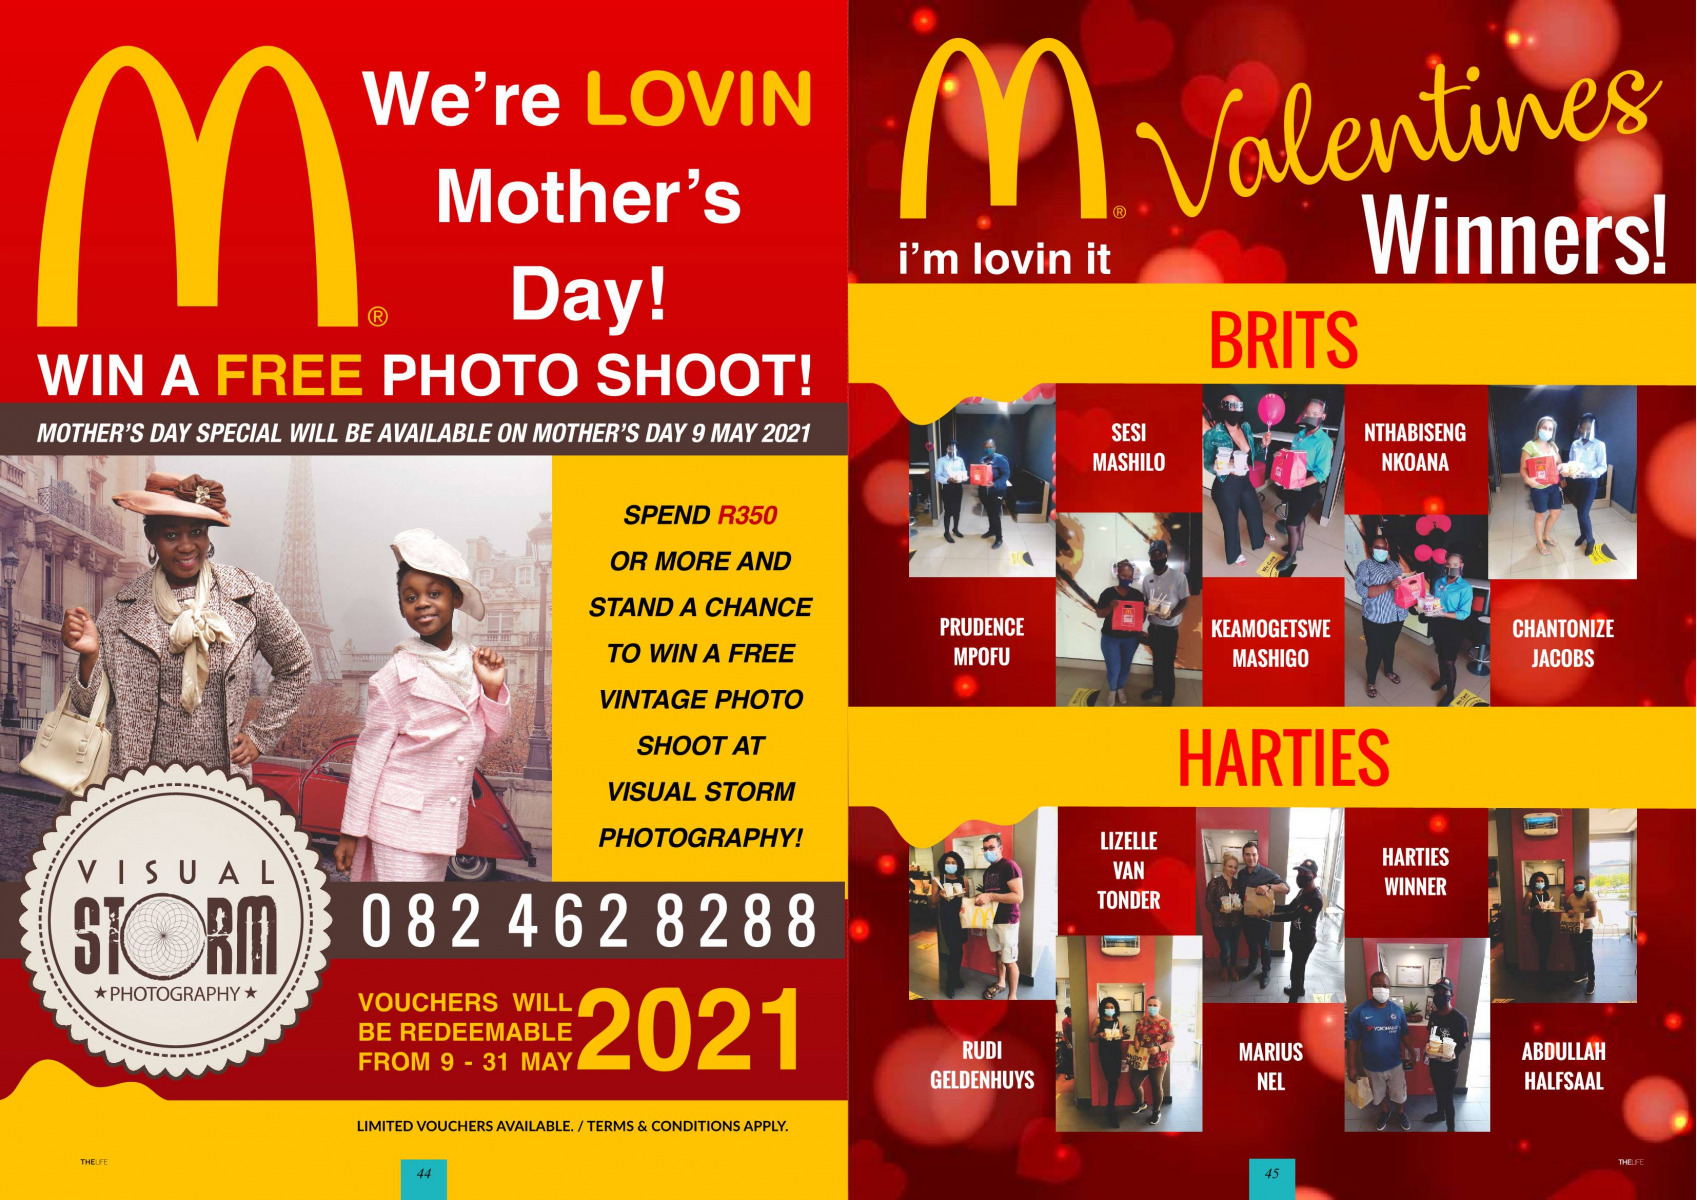 McDonald_s-Ads-Page-44-45-3-APPROVED1